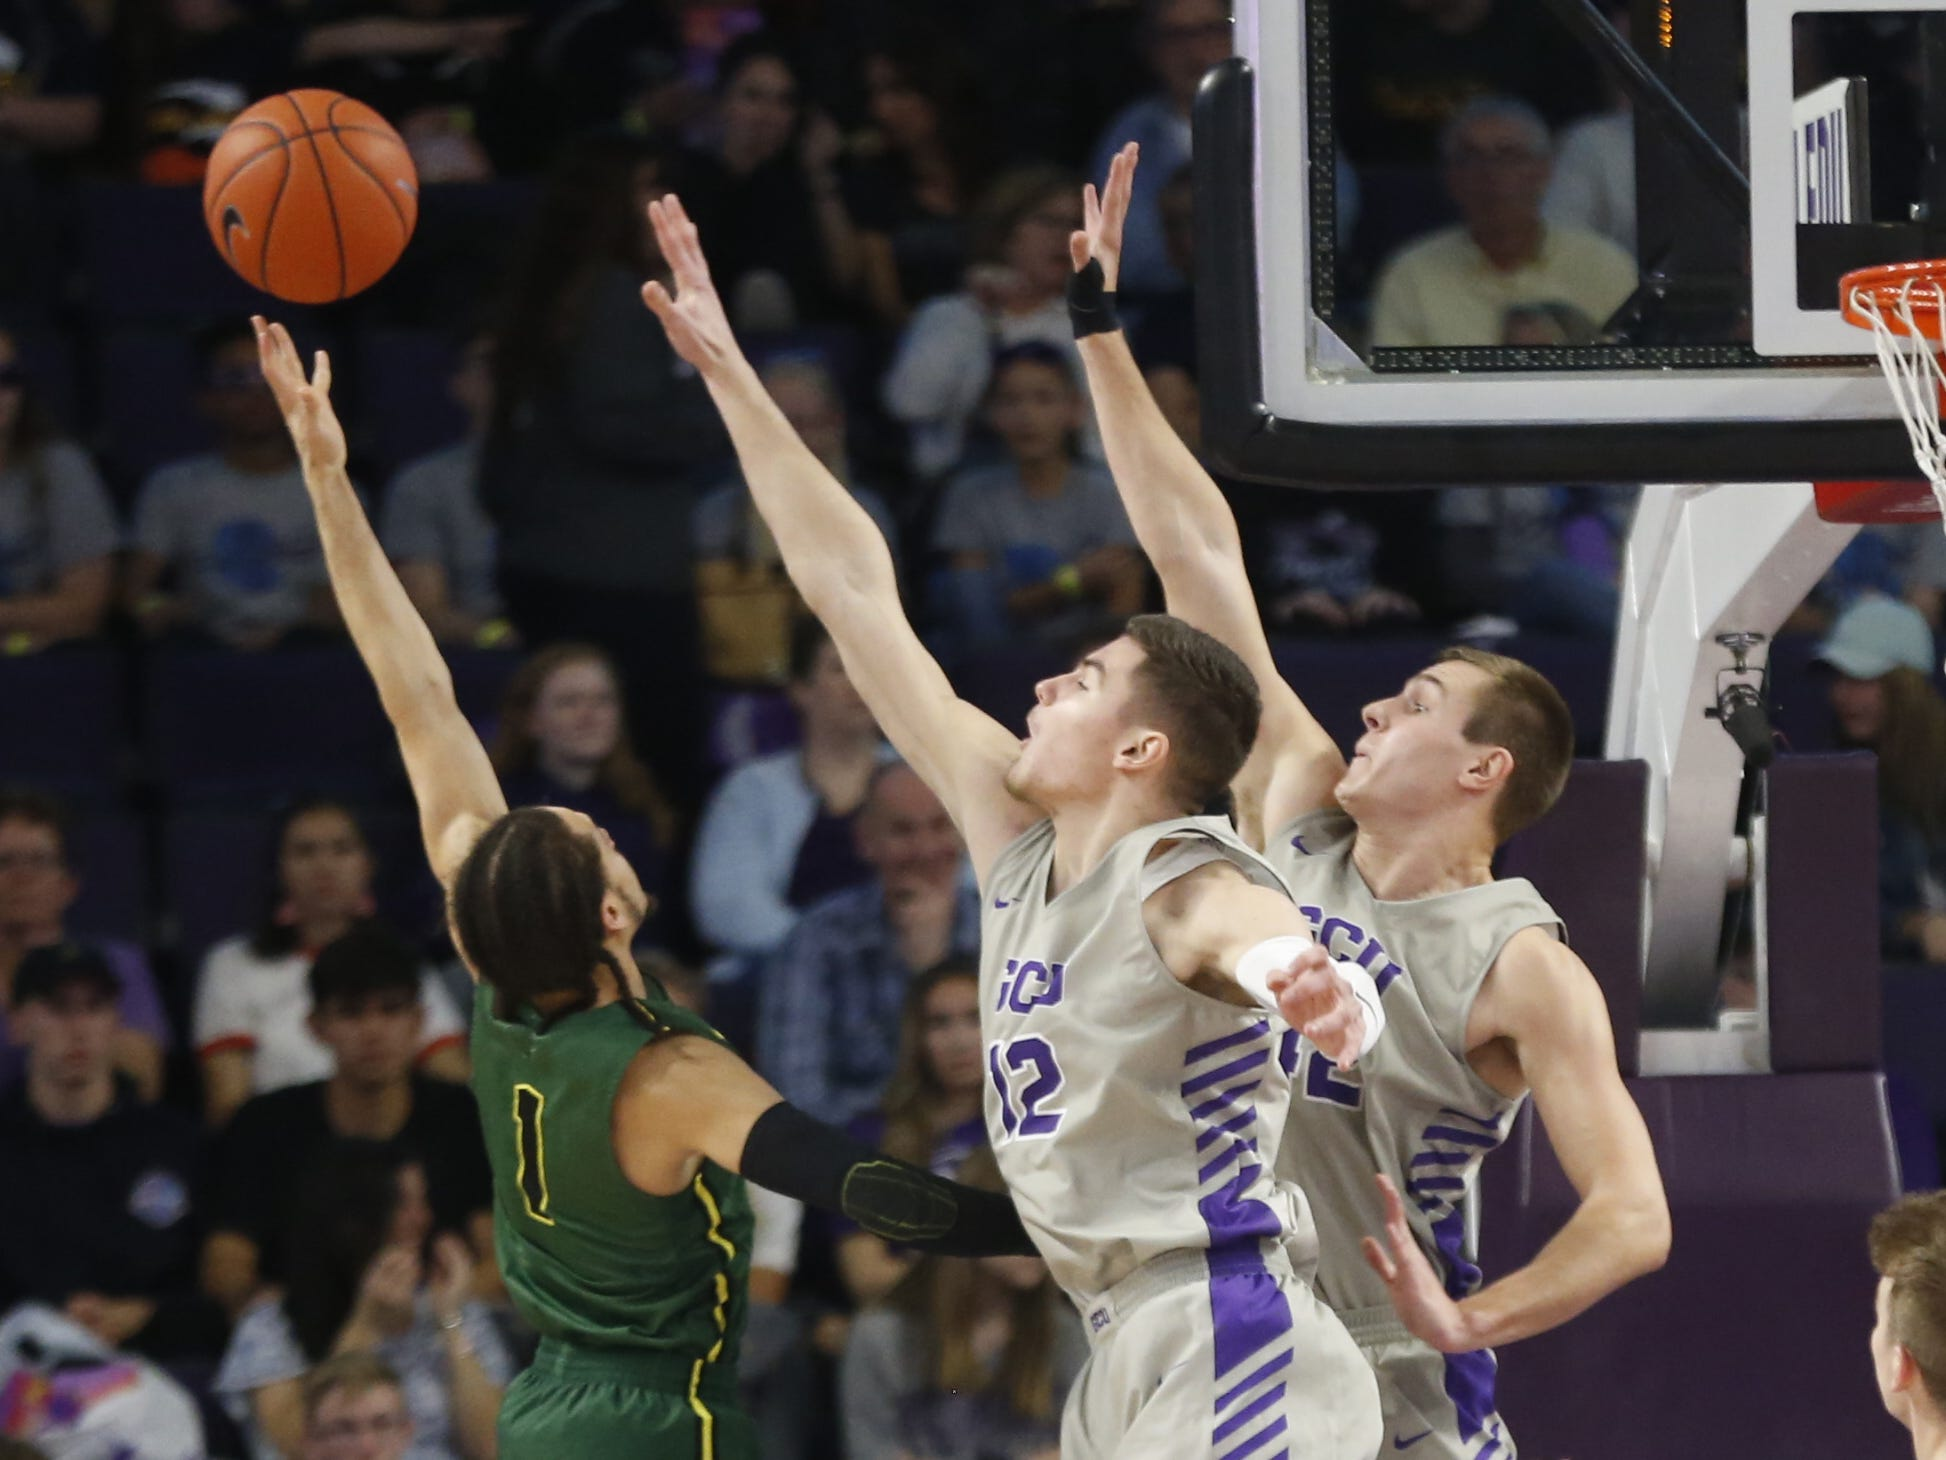 GCU's Roberts Blumbergs (12) and Gerard Martin (42) attempt to block Chicago State University's 	Rob Shaw (1) during the first half at Grand Canyon University Arena in Phoenix, Ariz. on January 17, 2019.